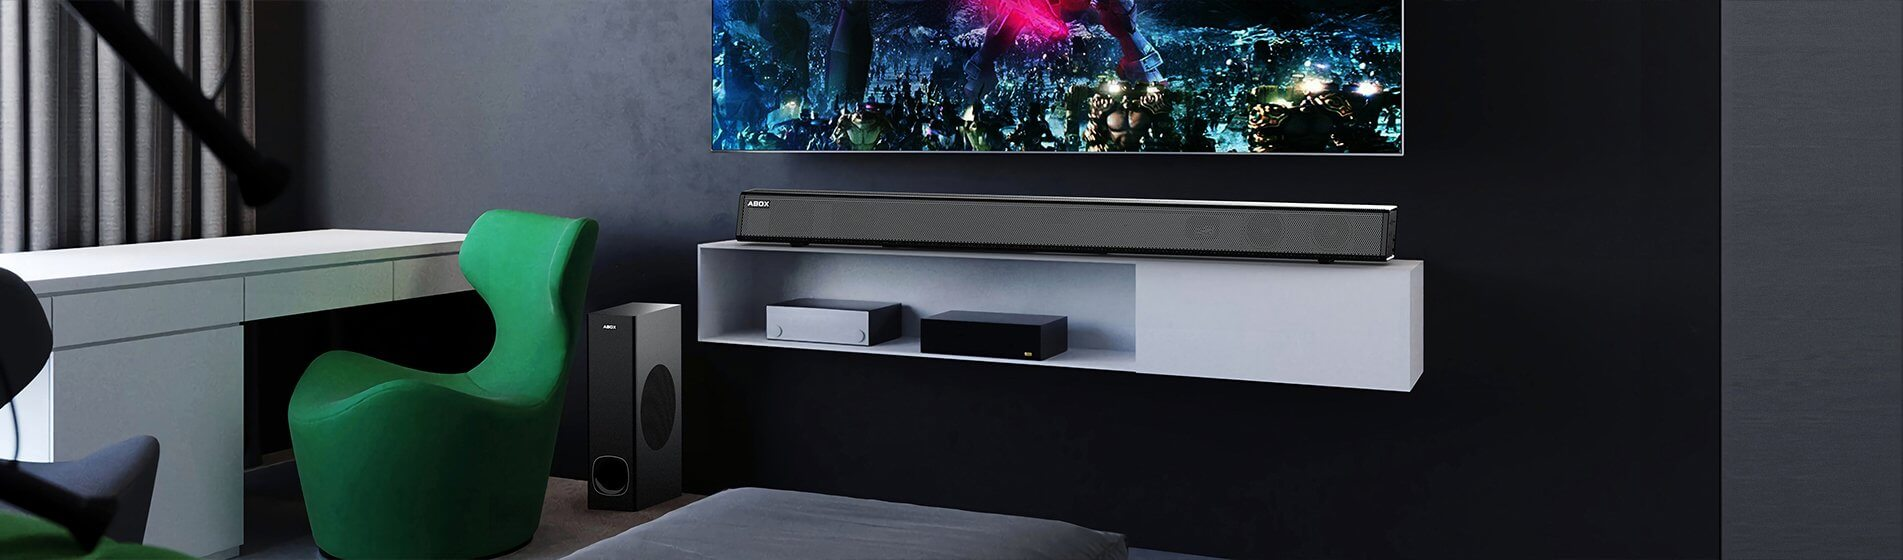 ABOX Soundbar and Subwoofer In Living Room